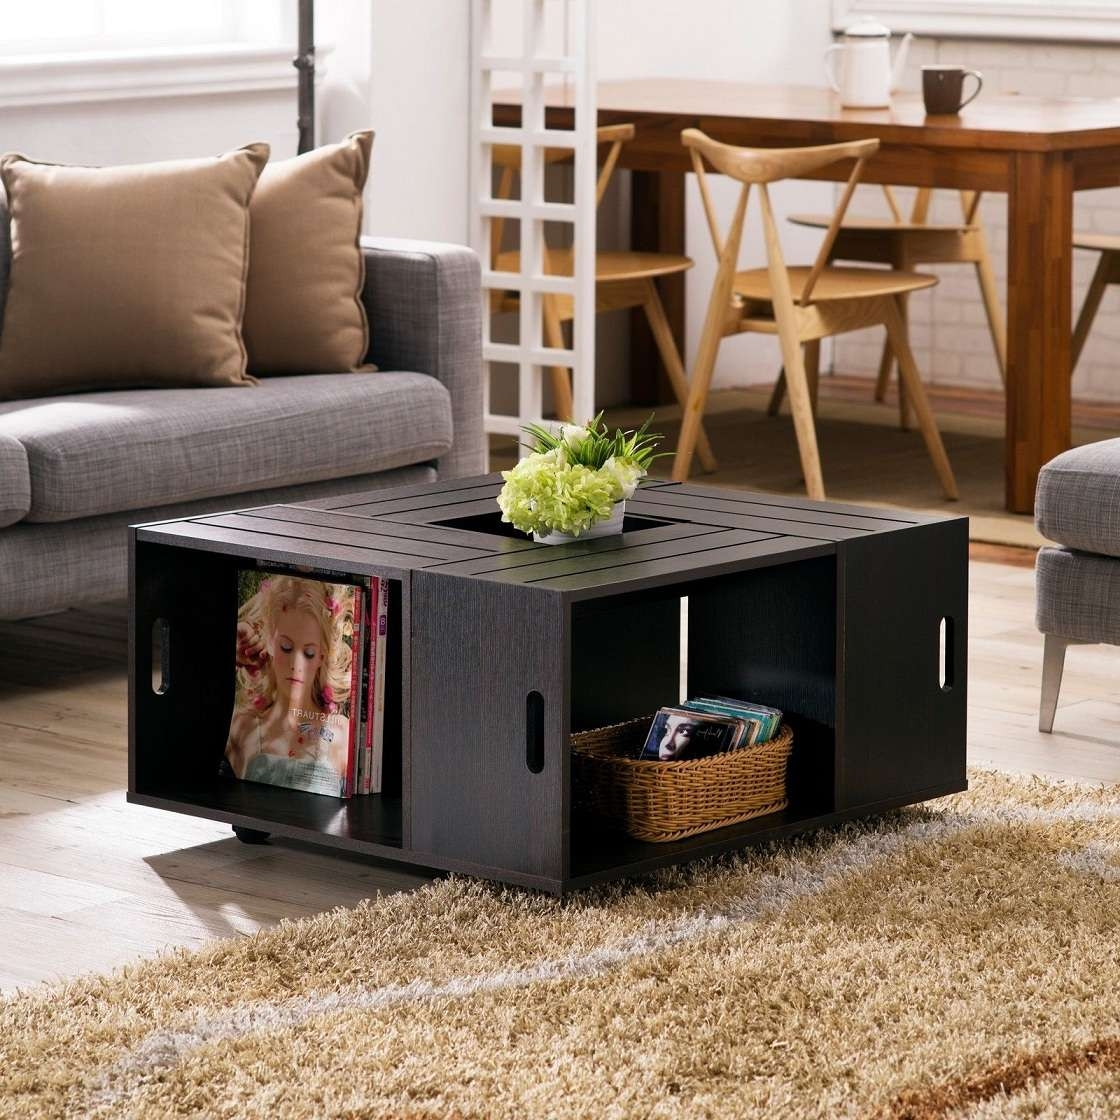 Black Square Coffee Table With Open Shelf Storage Throughout Widely Used Small Coffee Tables With Shelf (View 1 of 20)